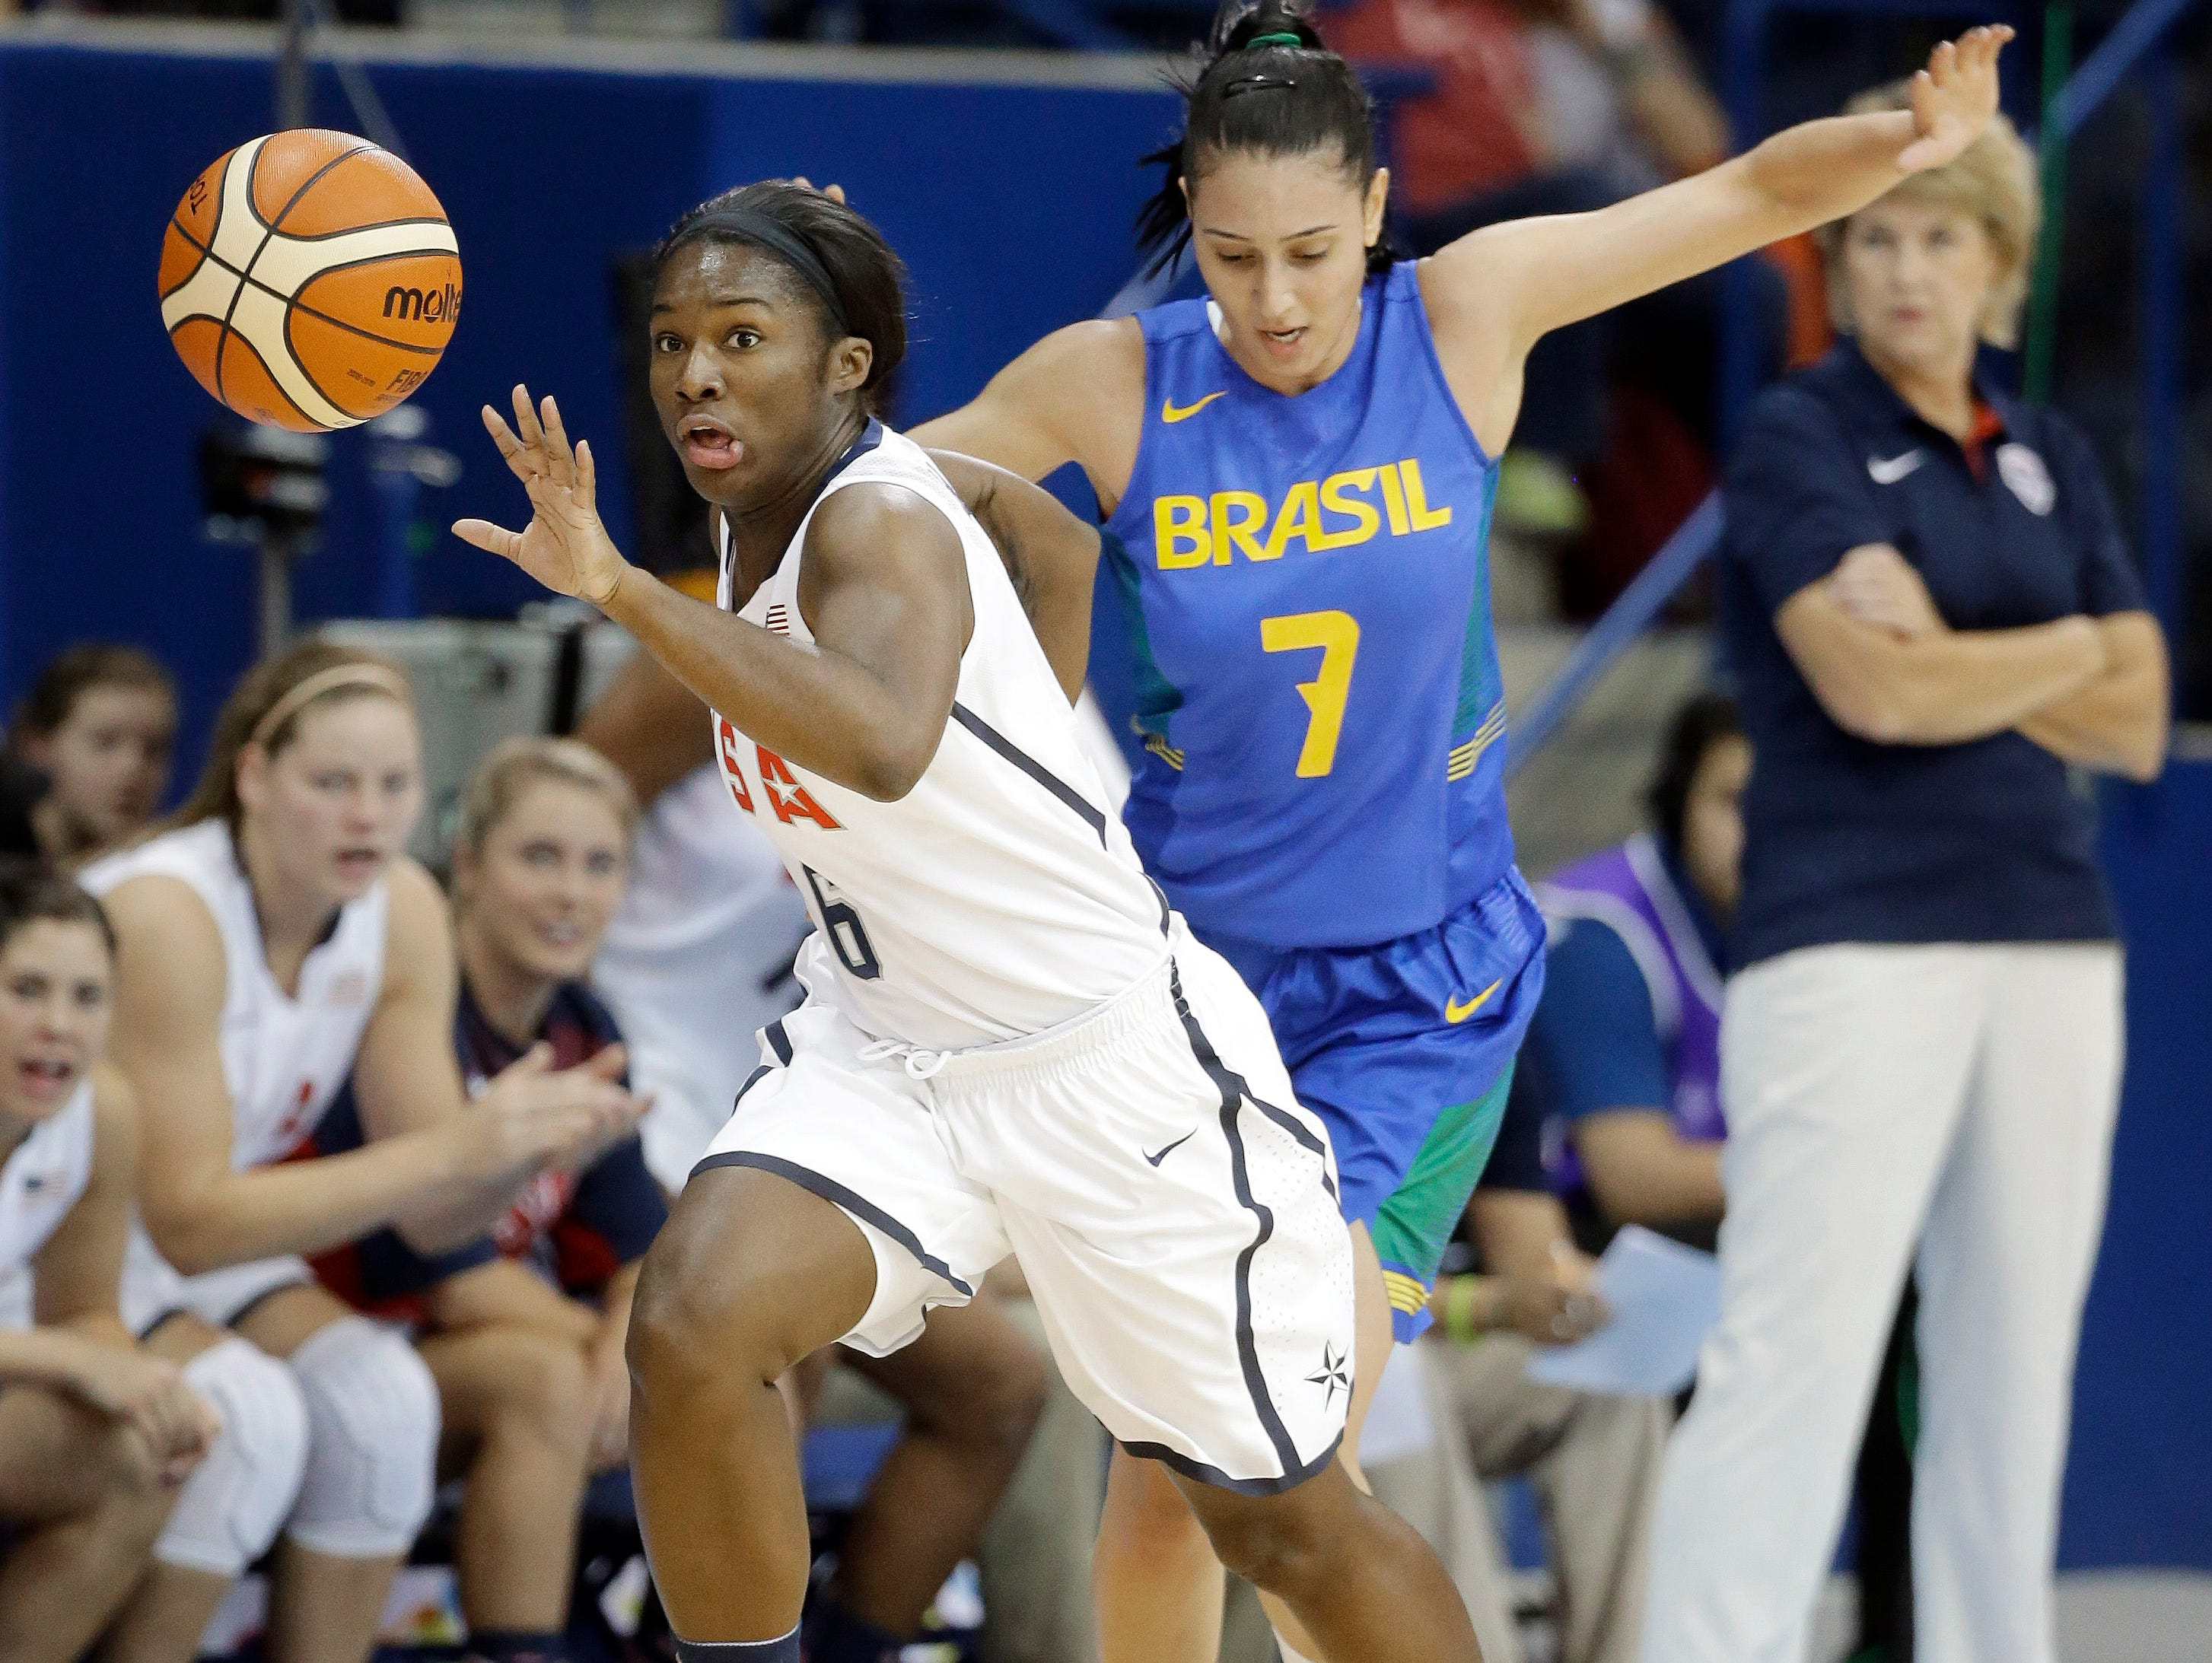 Linnae Harper (6) of the United States breaks down the court ahead of Patricia Teixeira (7) of Brazil in the first half of a women's preliminary round basketball game at the Pan Am Games Thursday, July 16, 2015, in Toronto. (AP Photo/Mark Humphrey)